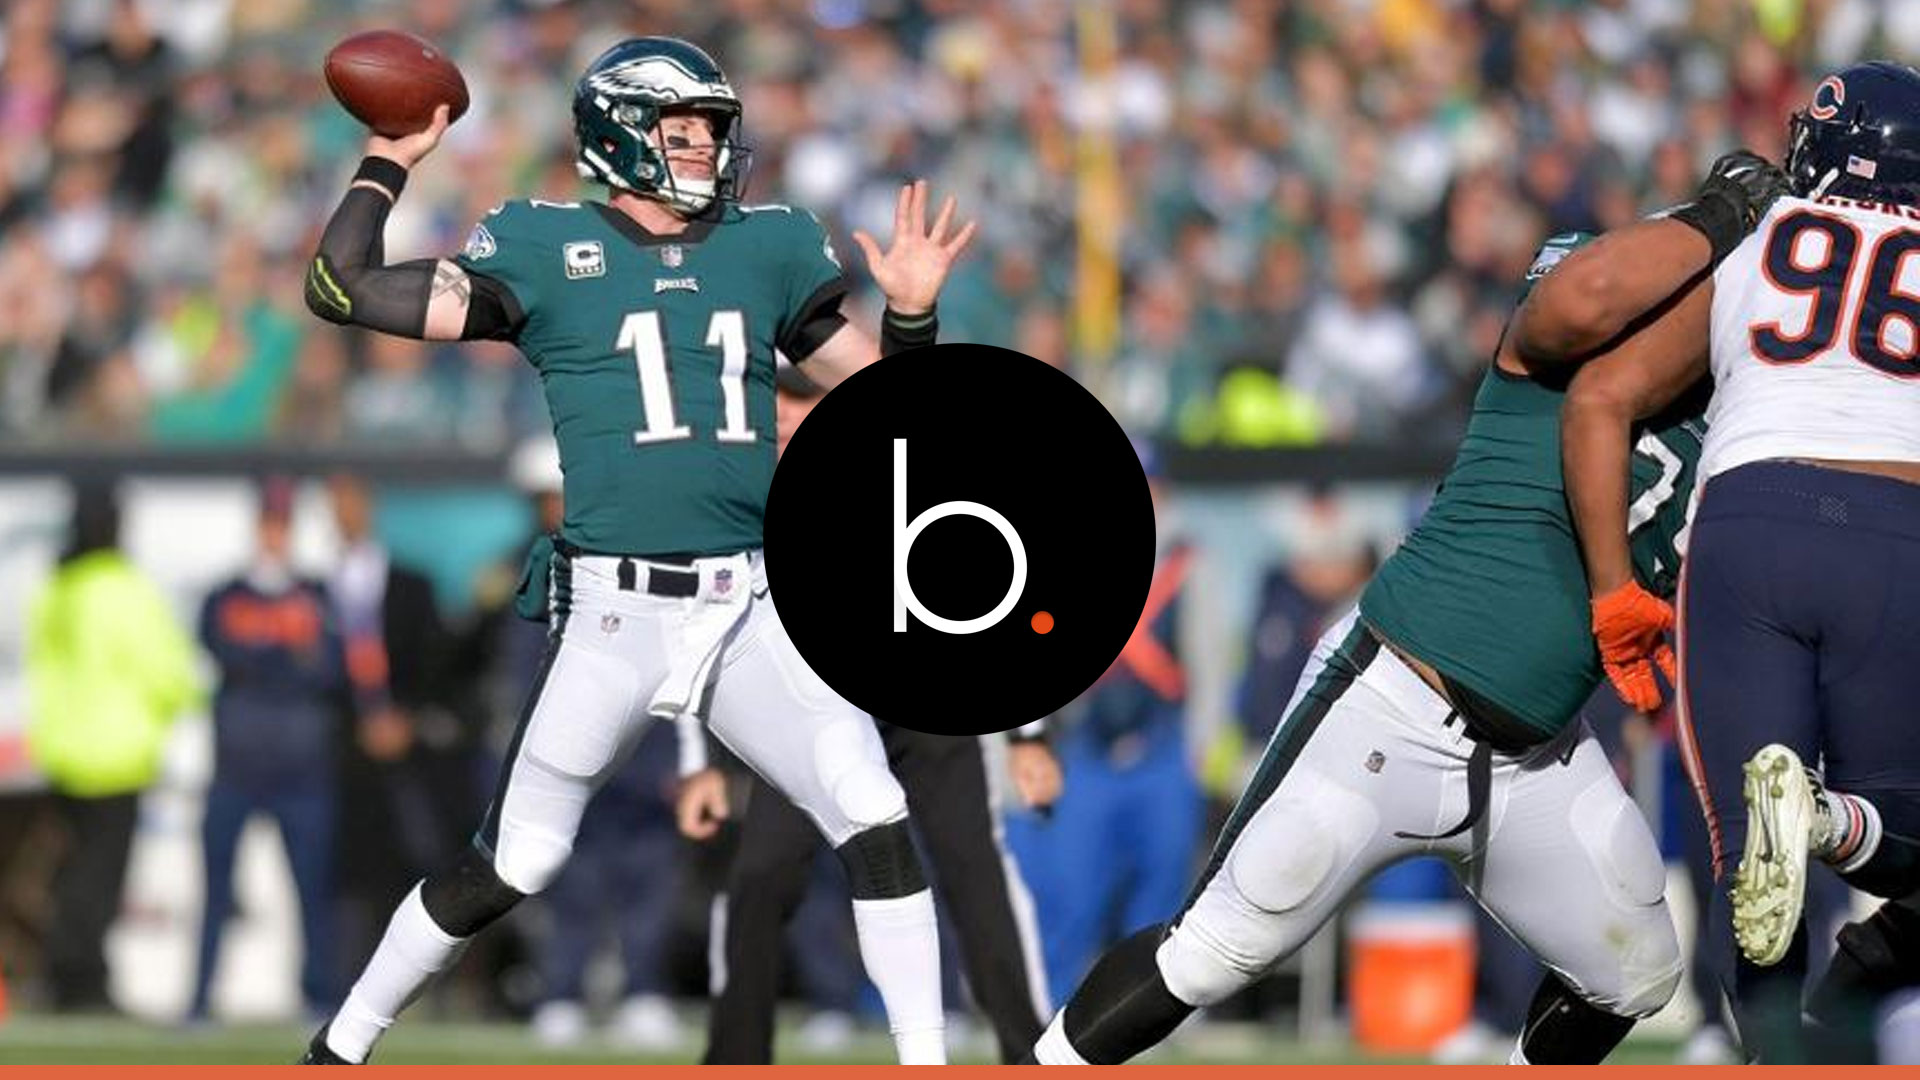 Philadelphia Eagles Quarterback Carson Wentz's season-ending injury